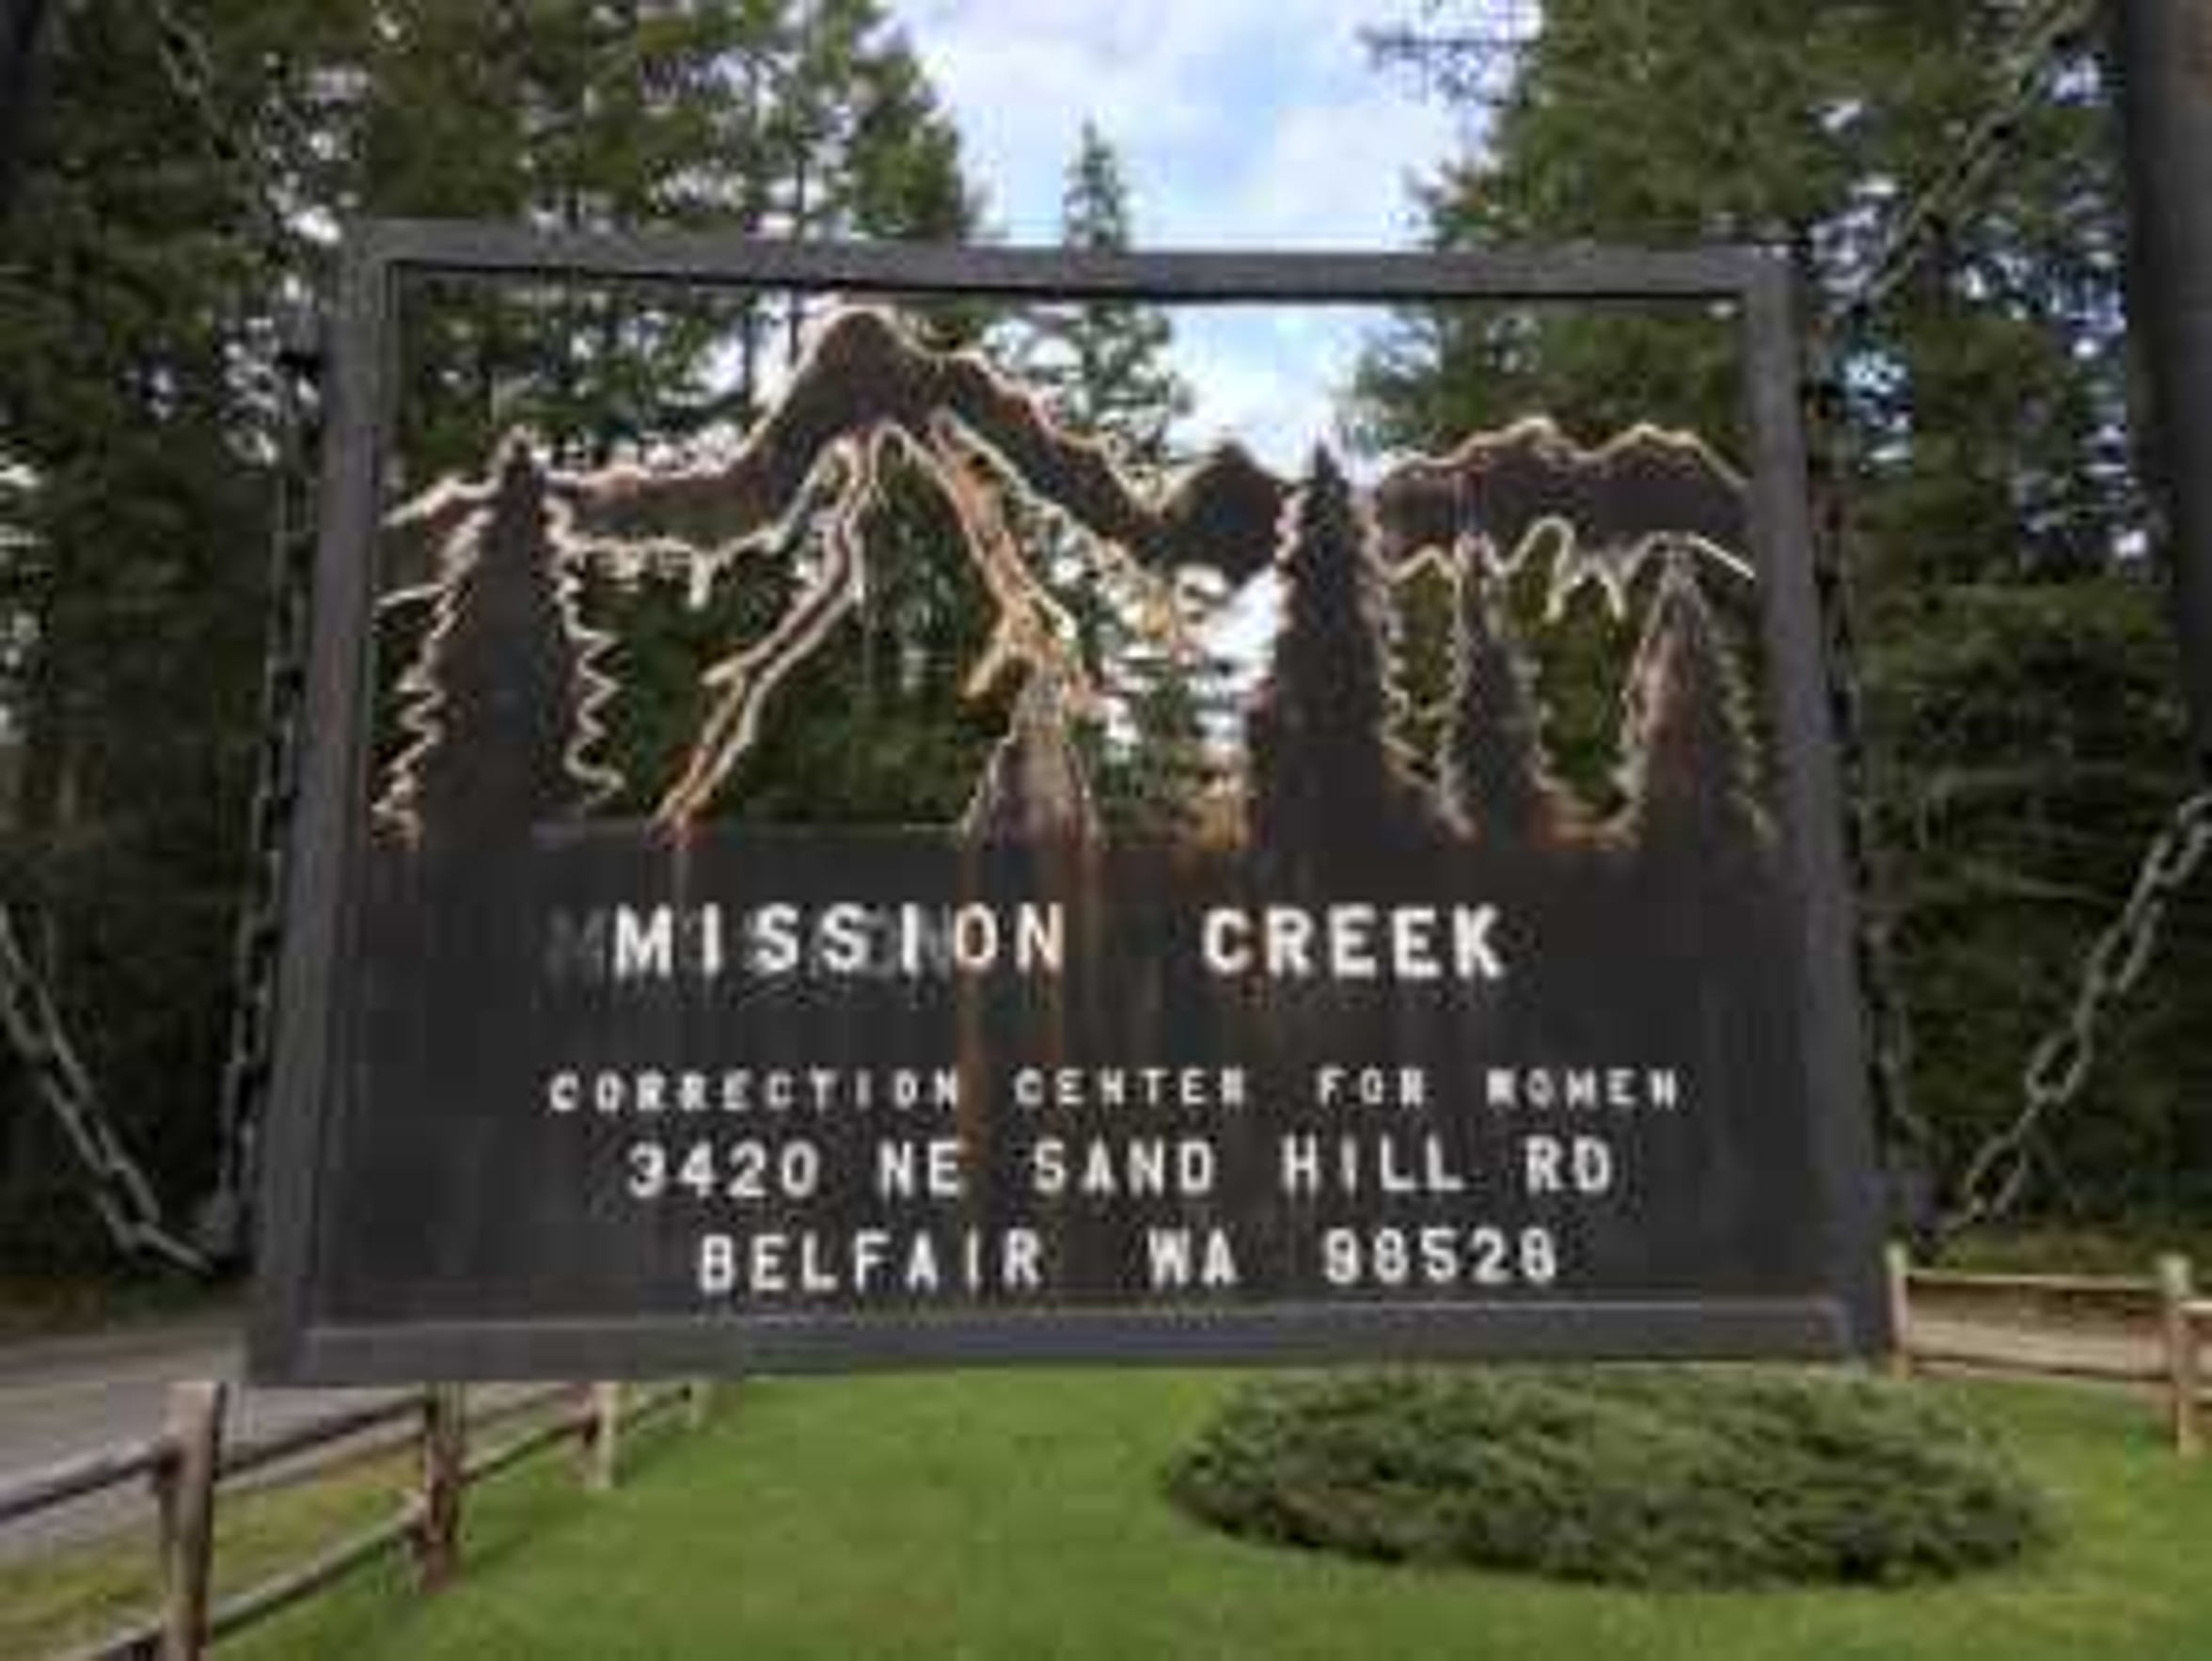 Mission Creek Corrections Center, a minimum security prison for women, is one of two women's prisons in the state of Washington.